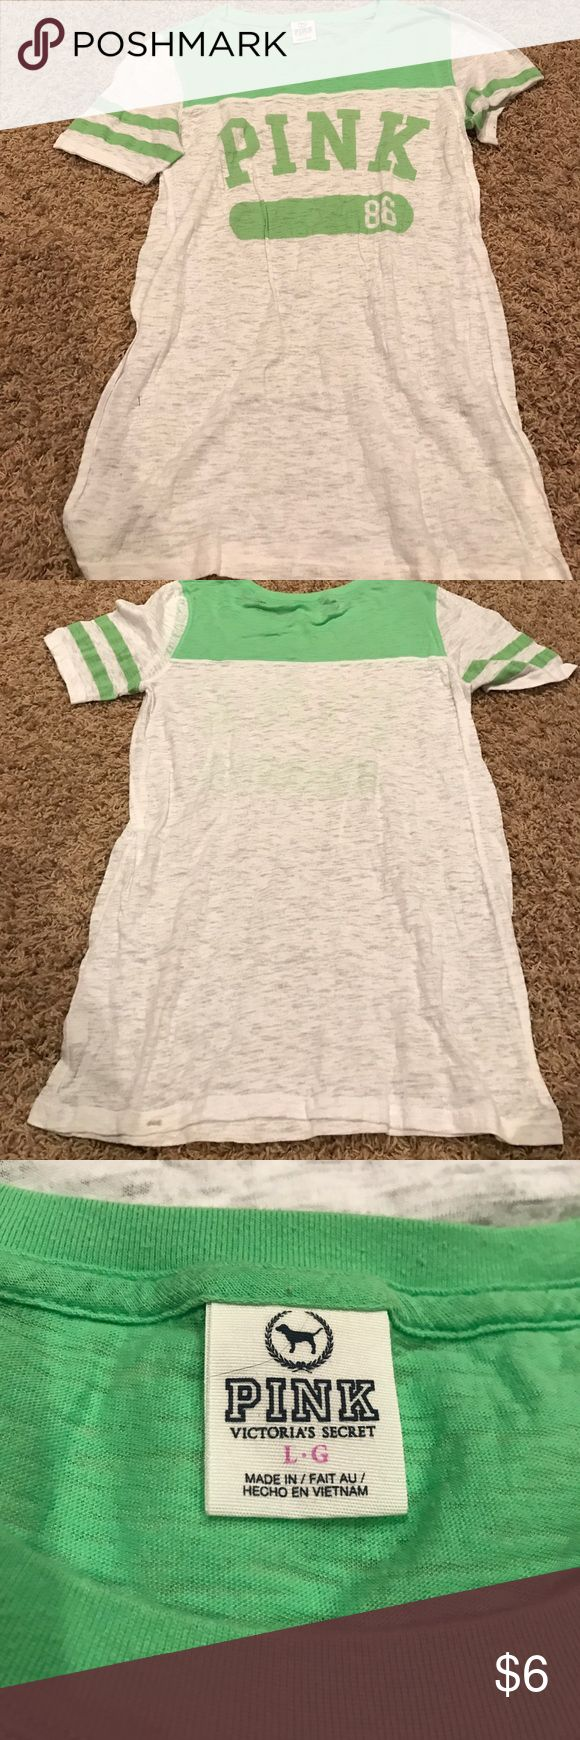 ❤ VS PINK Green Short Sleeve Top L Victoria's Secret pink Green short sleeve tee shirt size large. From a smoke free home PINK Victoria's Secret Tops Tees - Short Sleeve